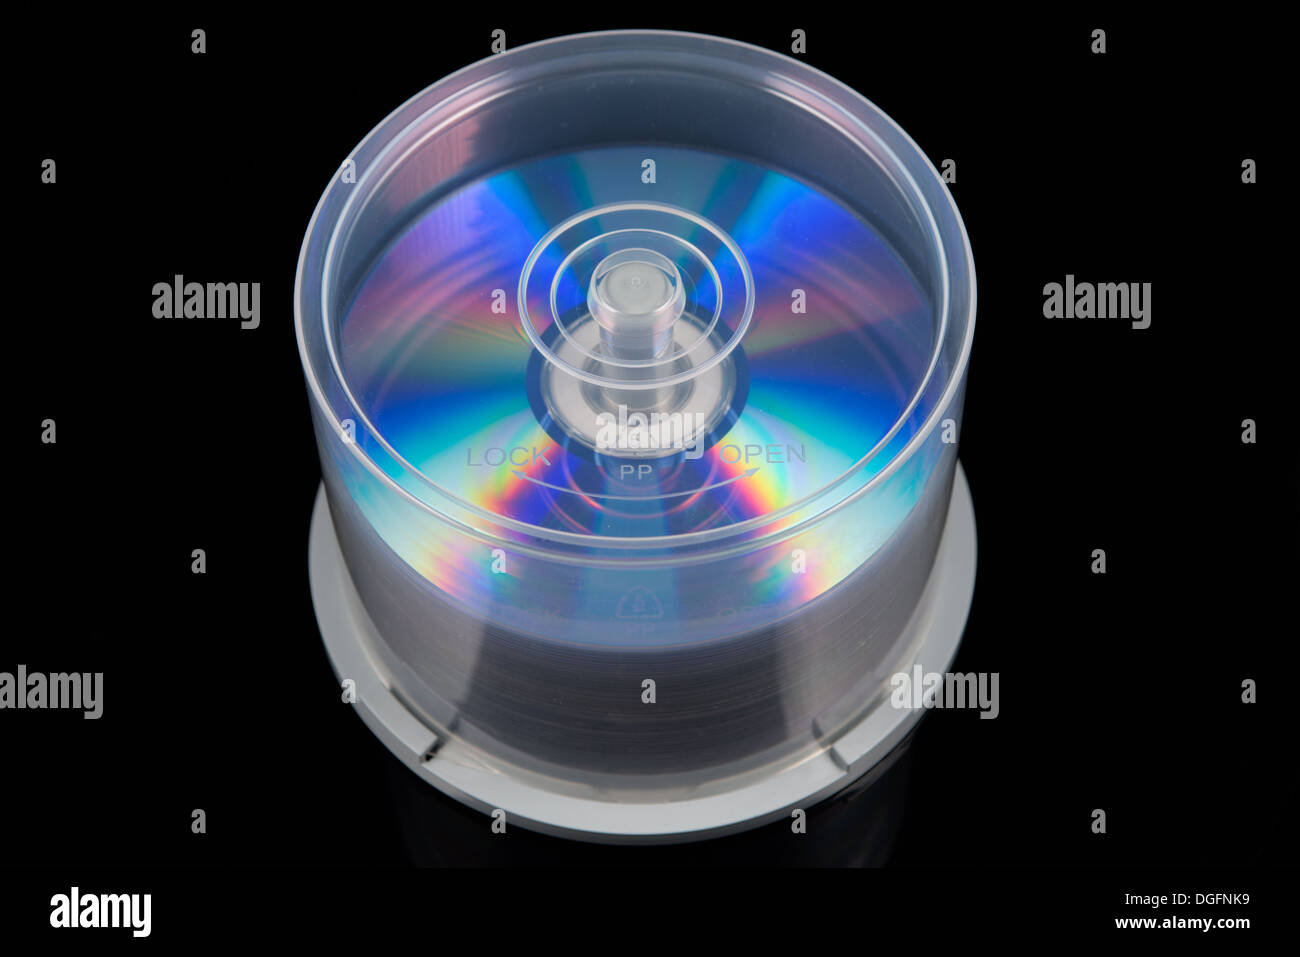 stack of dvd's, cd's on a spindle - Stock Image